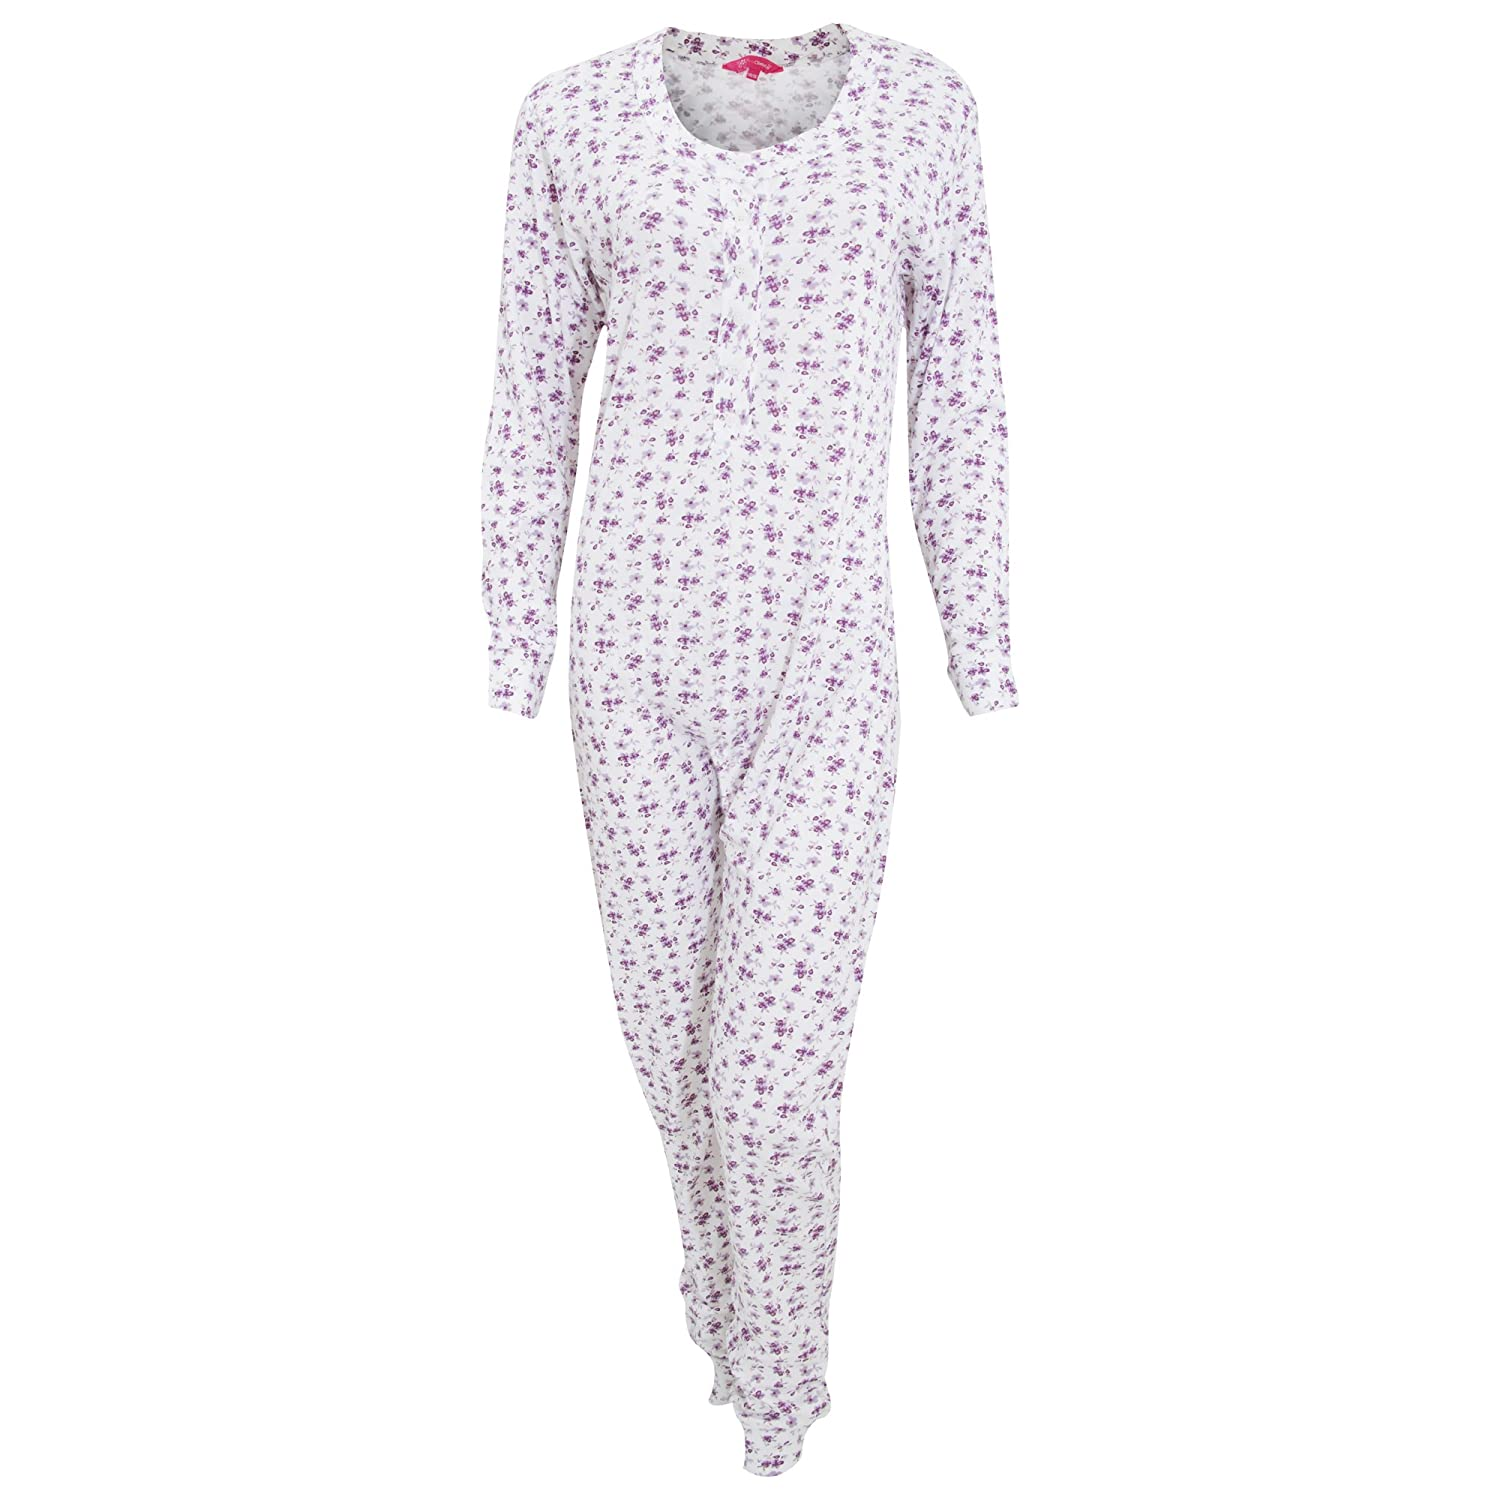 Universal Textiles Womens/Ladies Thermal Floral Pattern All In One Bodysuit